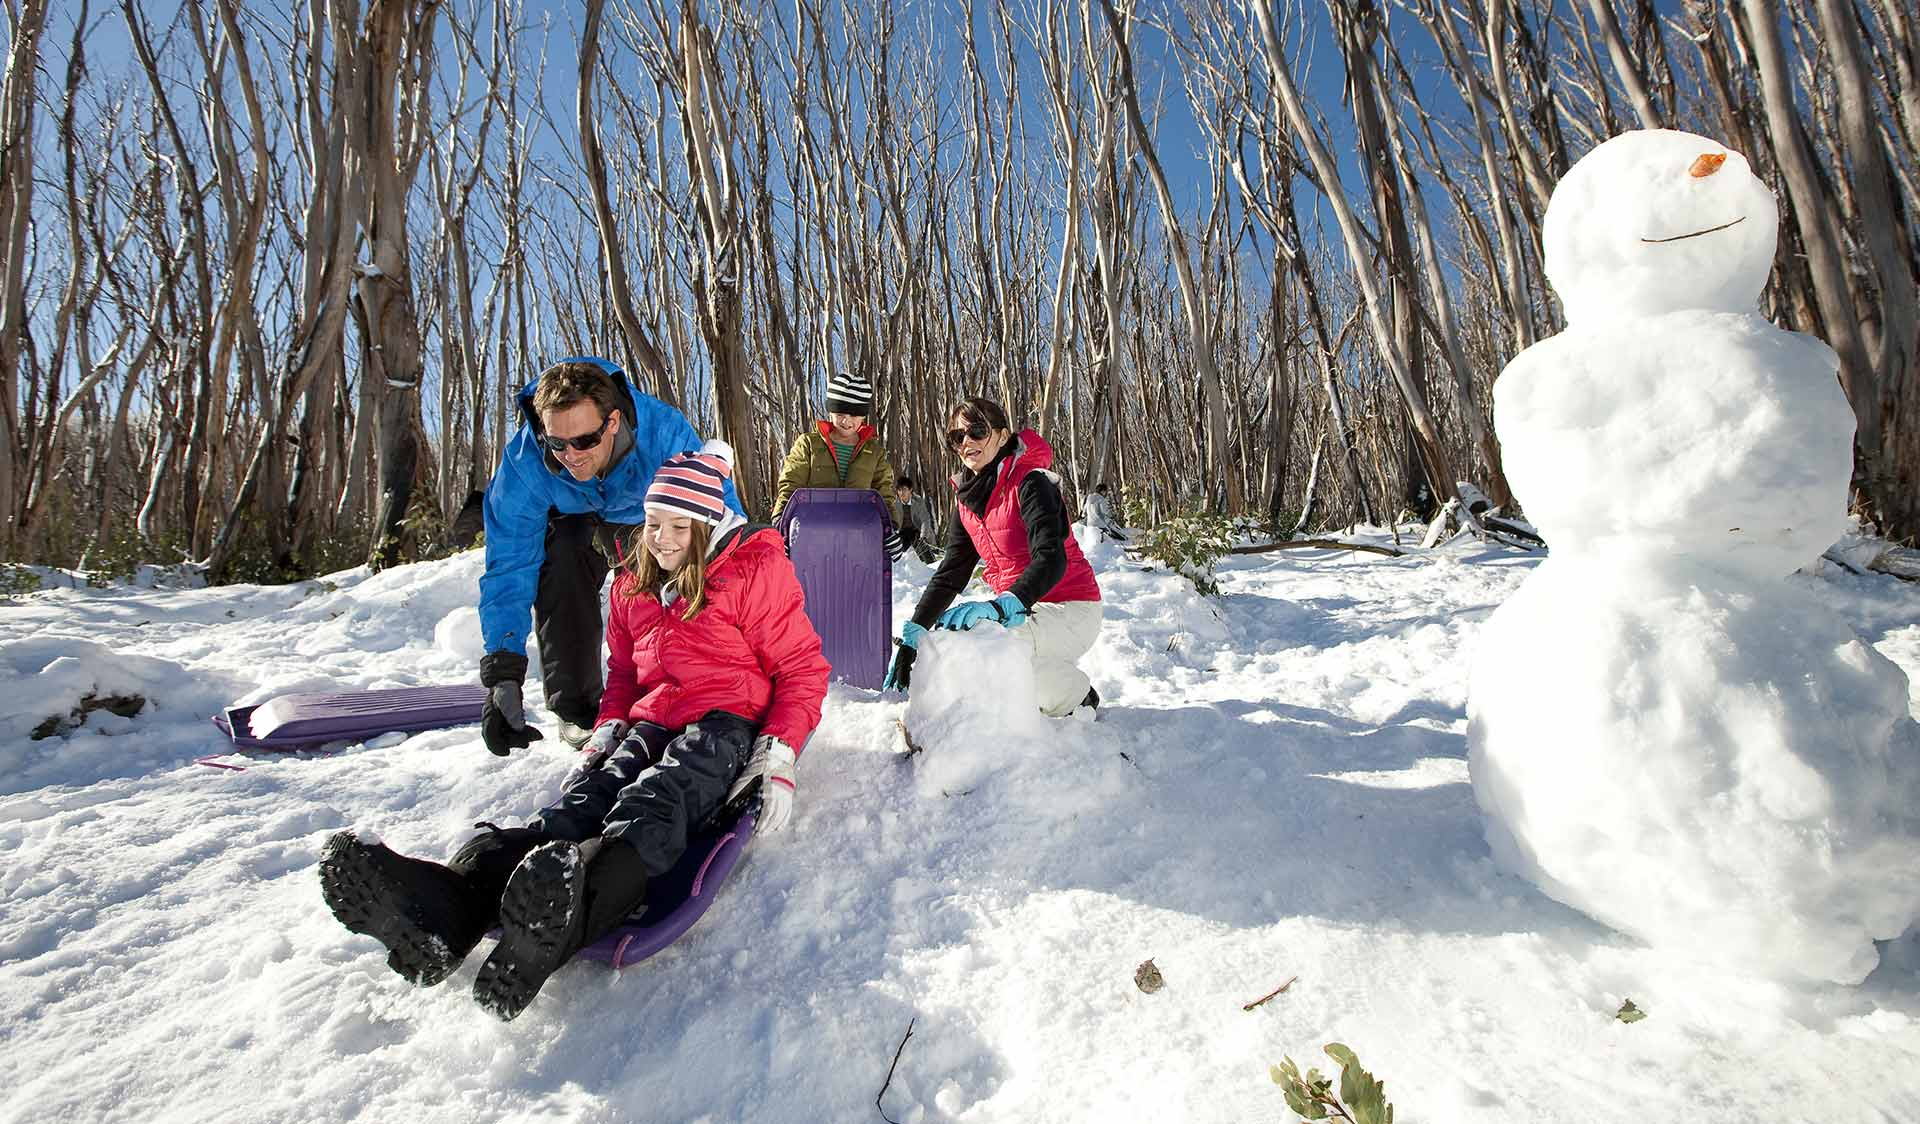 A family plays in the snow at Mt St-Gwinear in the Baw Baw National Park.